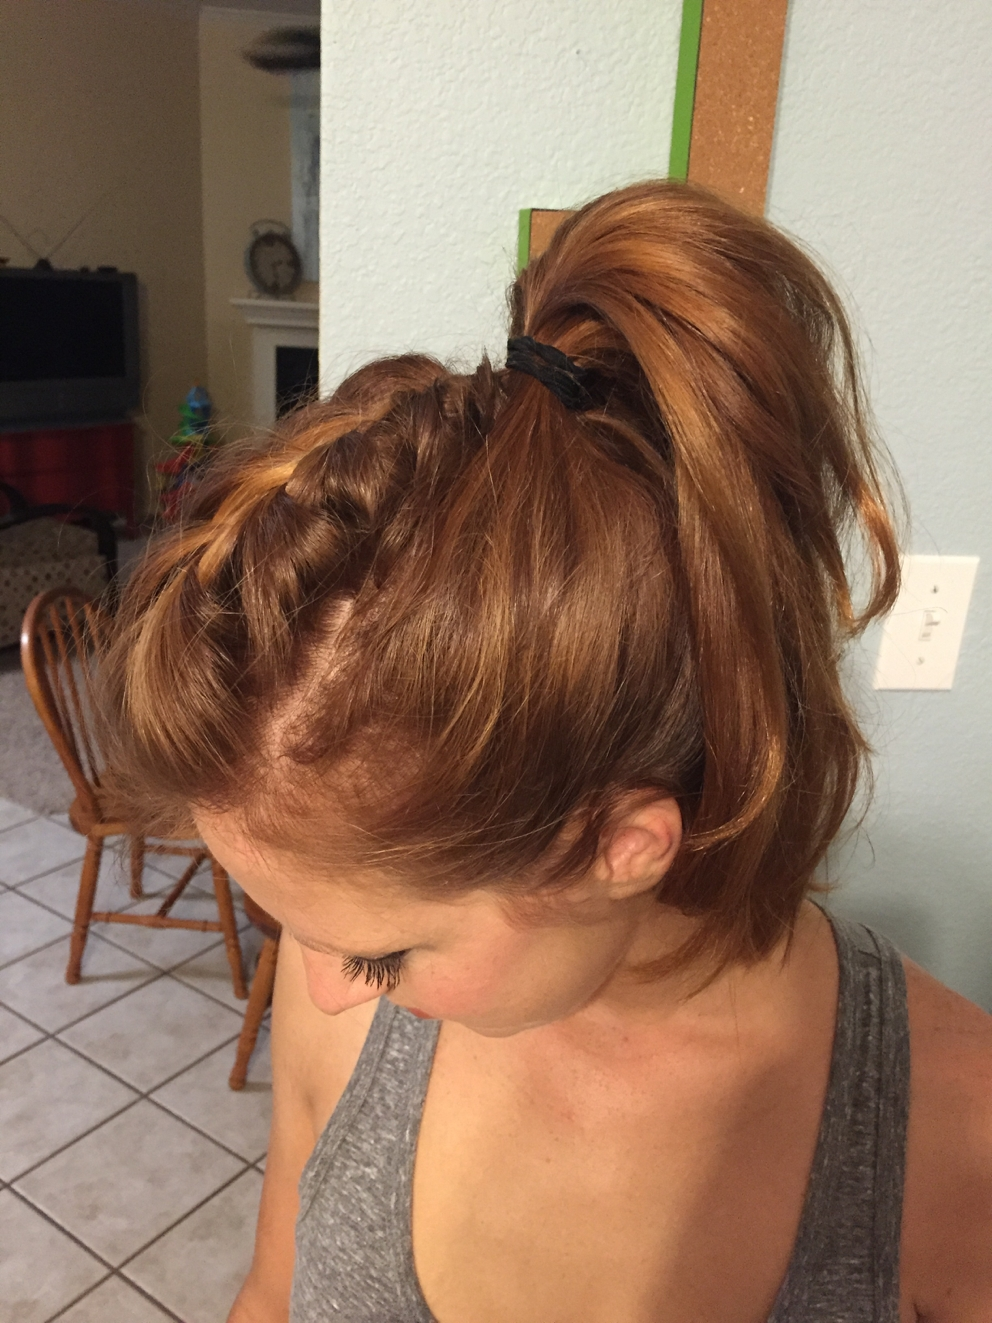 How To Get The Perfect Mohawk Ponytail – Perky Pony In Trendy Mohawk Braid And Ponytail Hairstyles (View 15 of 20)